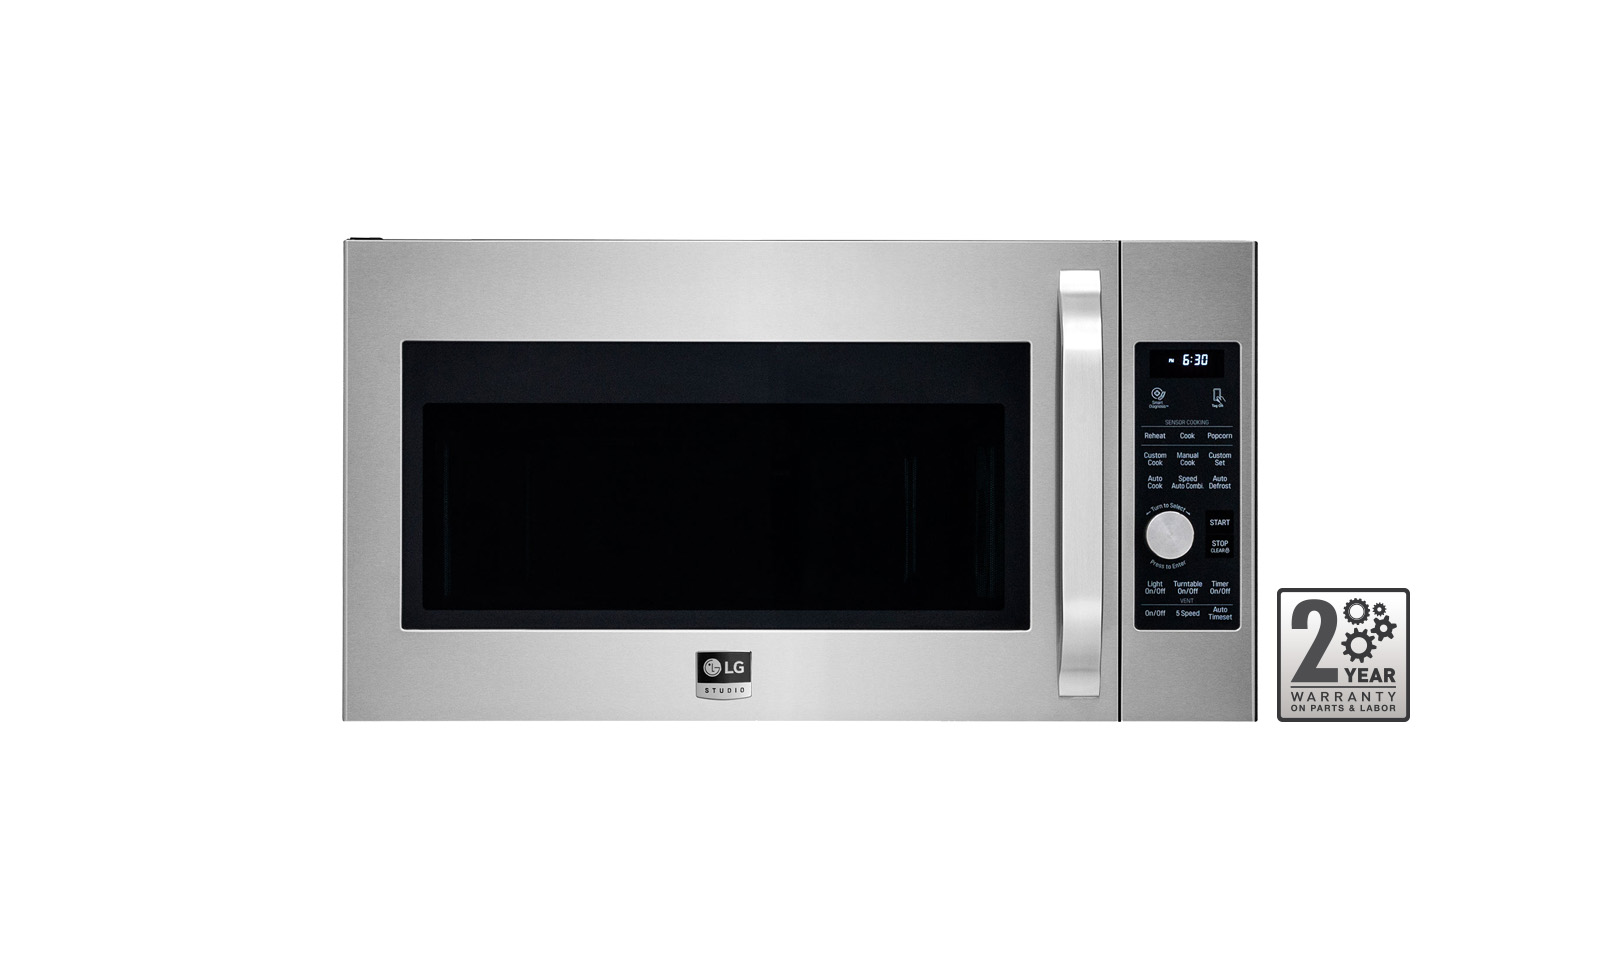 Whirlpool white ice costco - Lg Studio 1 7cuft Over The Range Microwave Oven In Stainless Steel Lsmc3086st